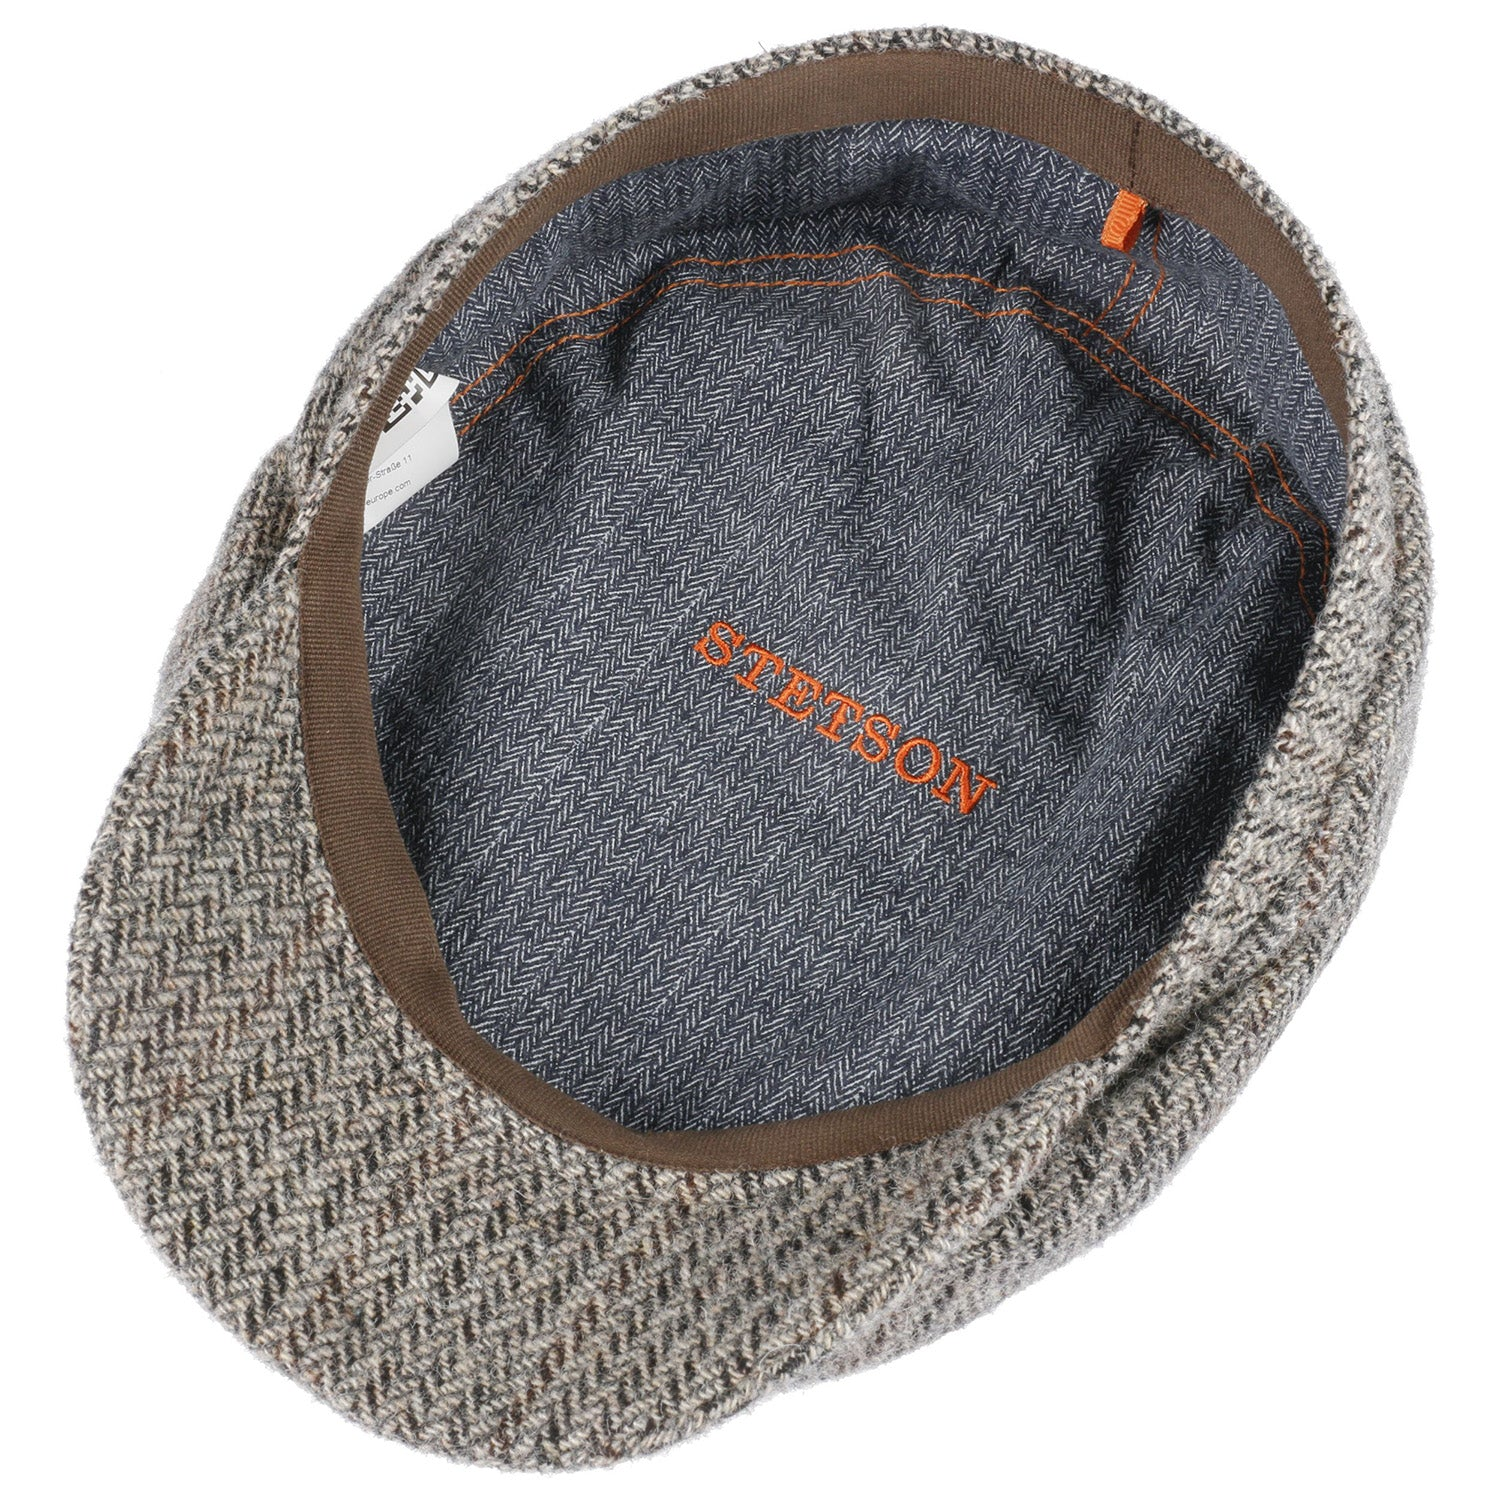 Stetson Hastings Virgin Wool Flat Cap